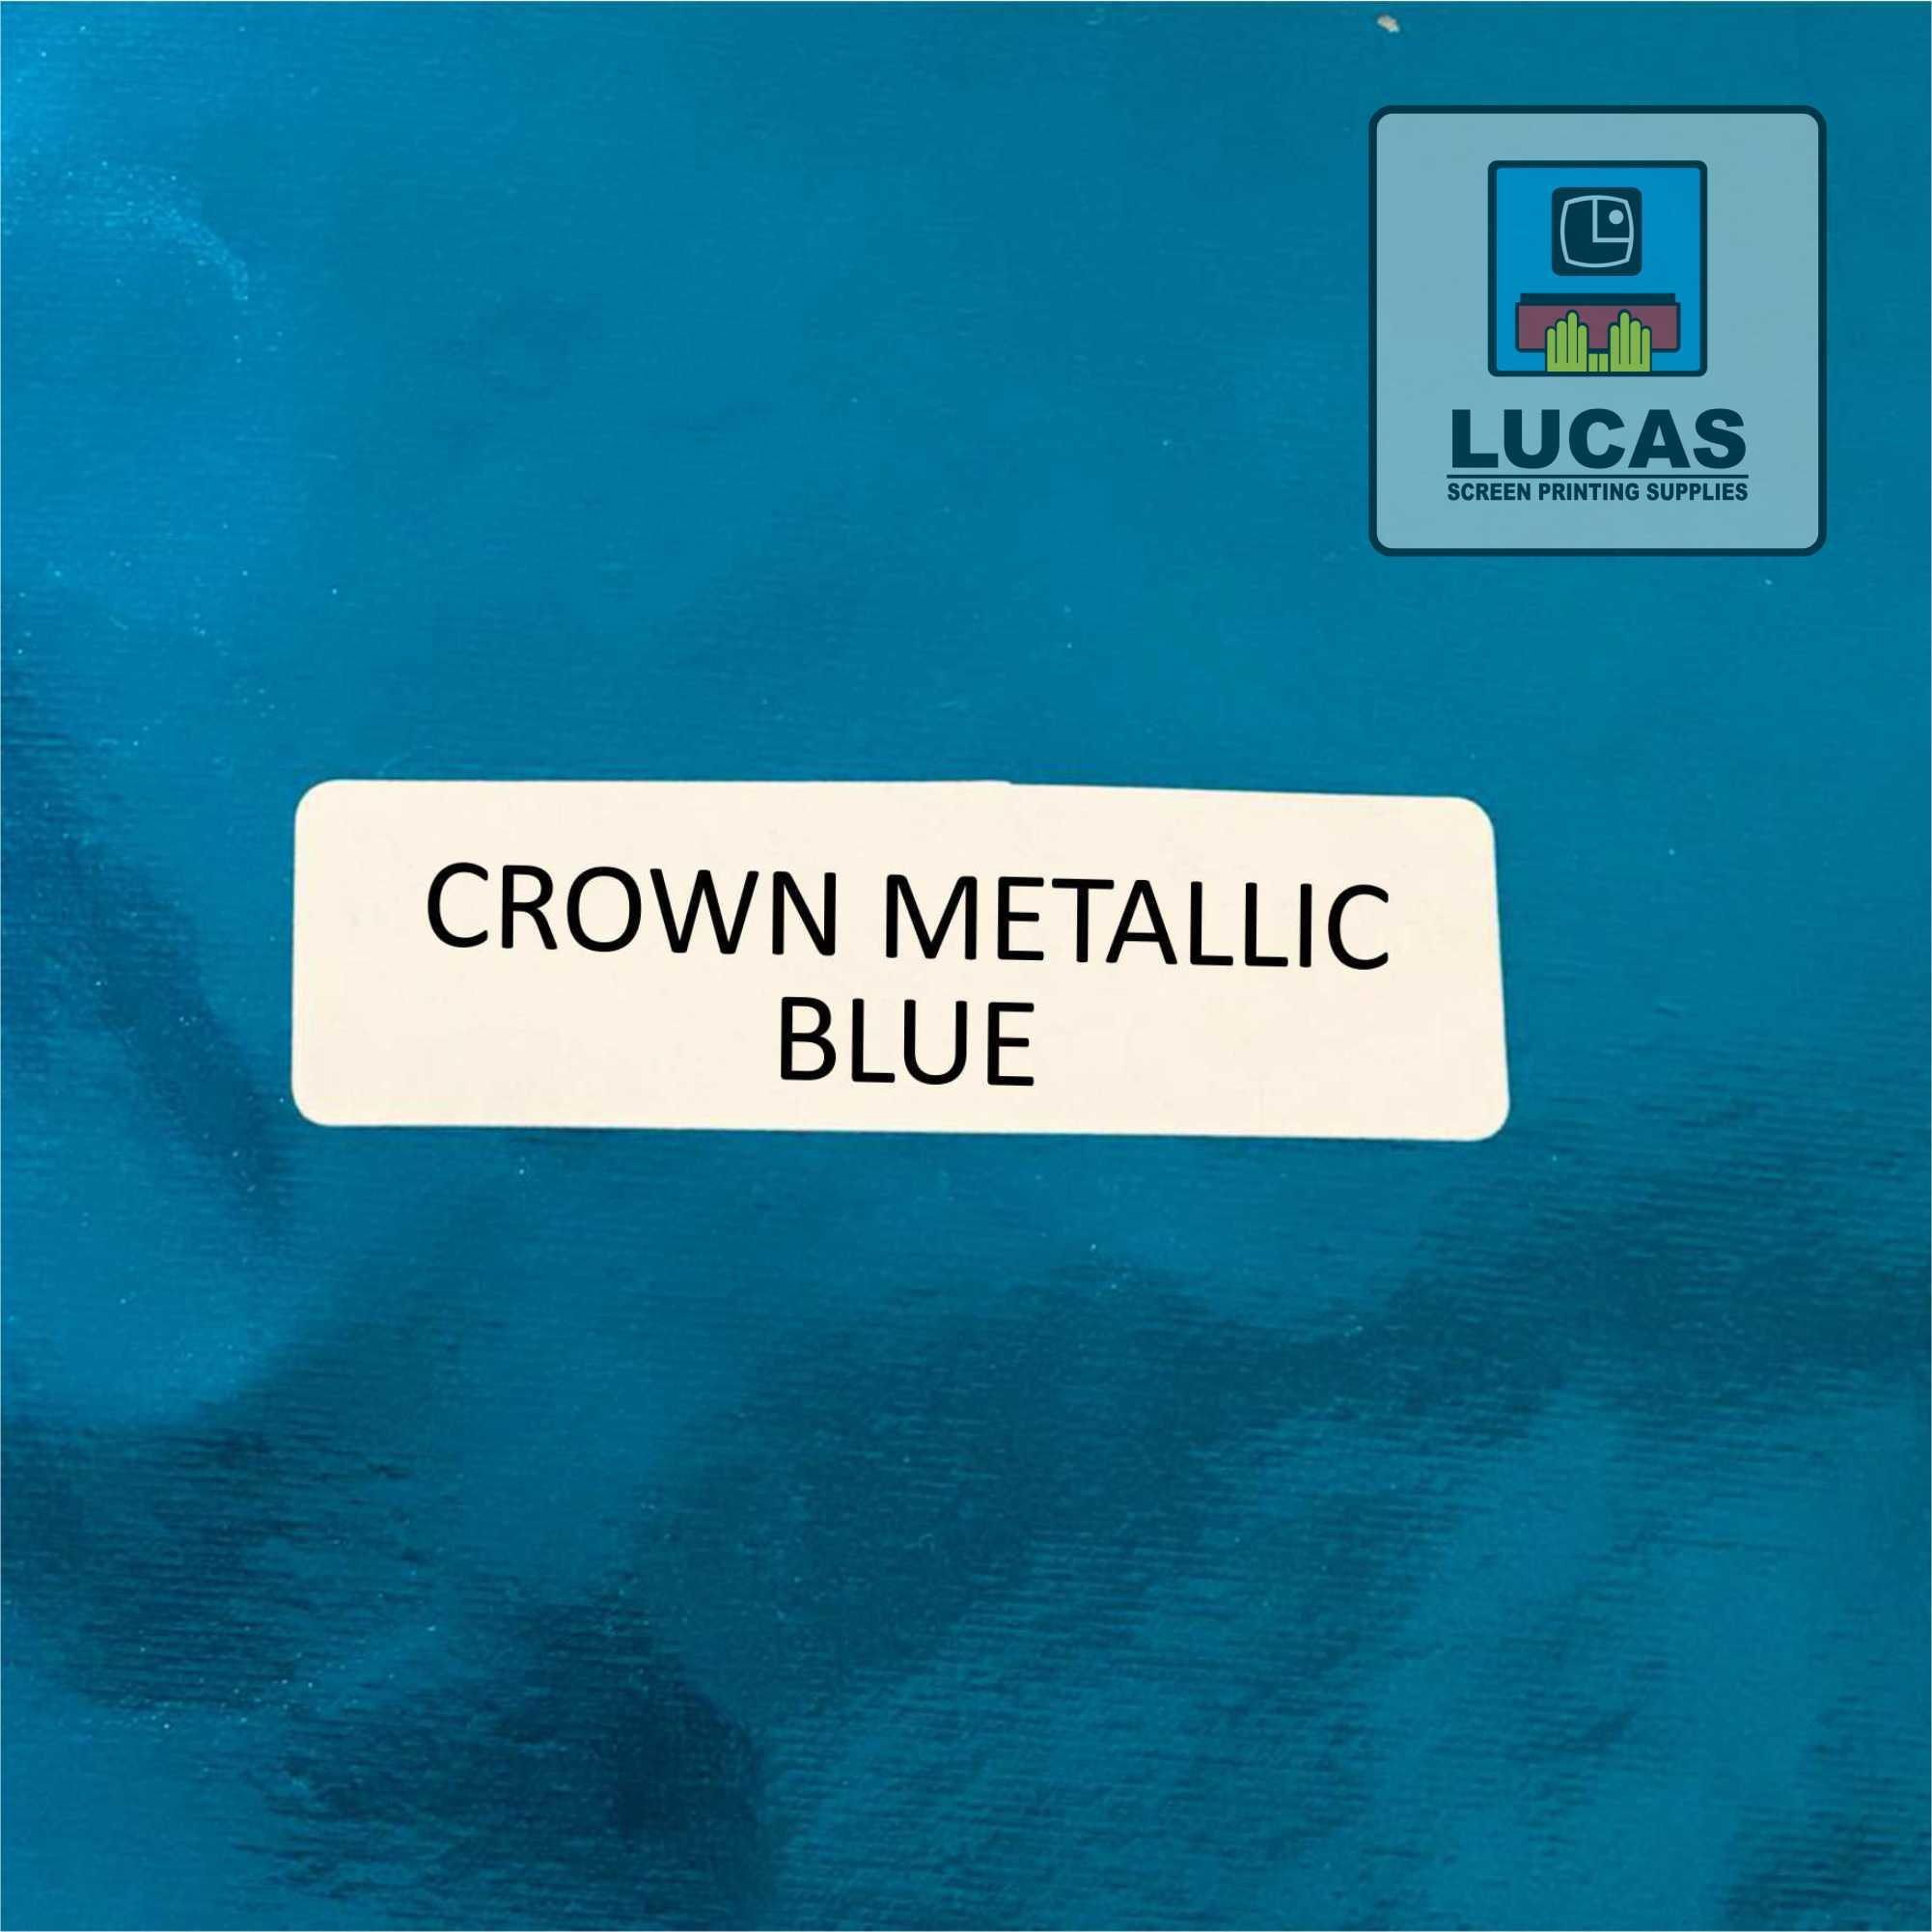 CROWN METALLIC BLUE.jpg